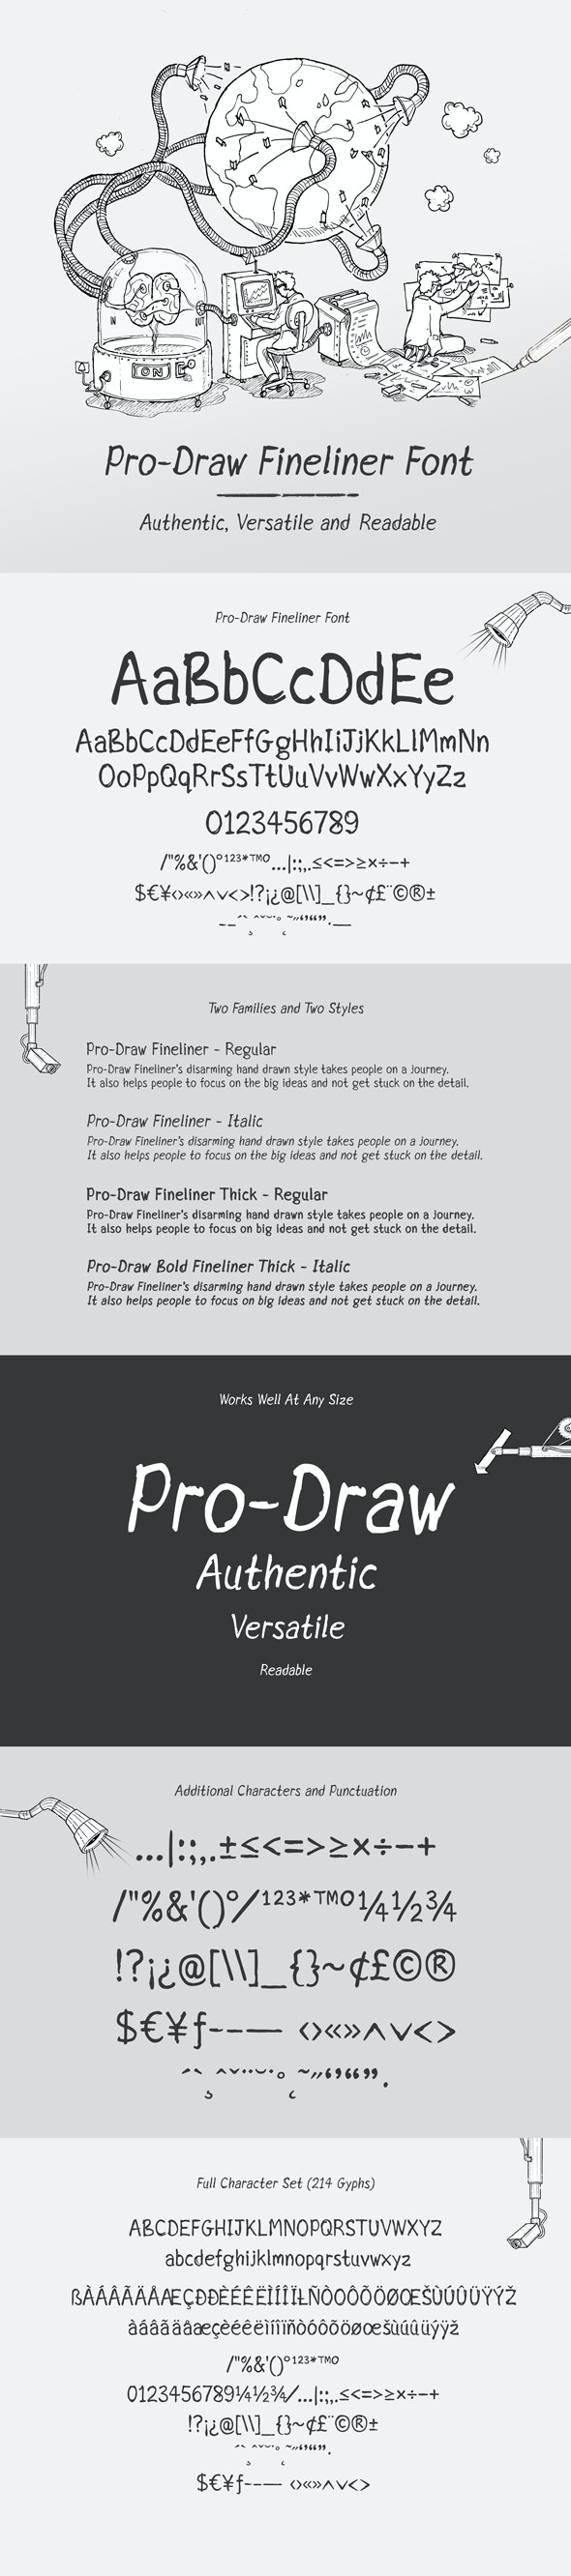 Pro-Draw Fineliner Font - Hand-writing Script